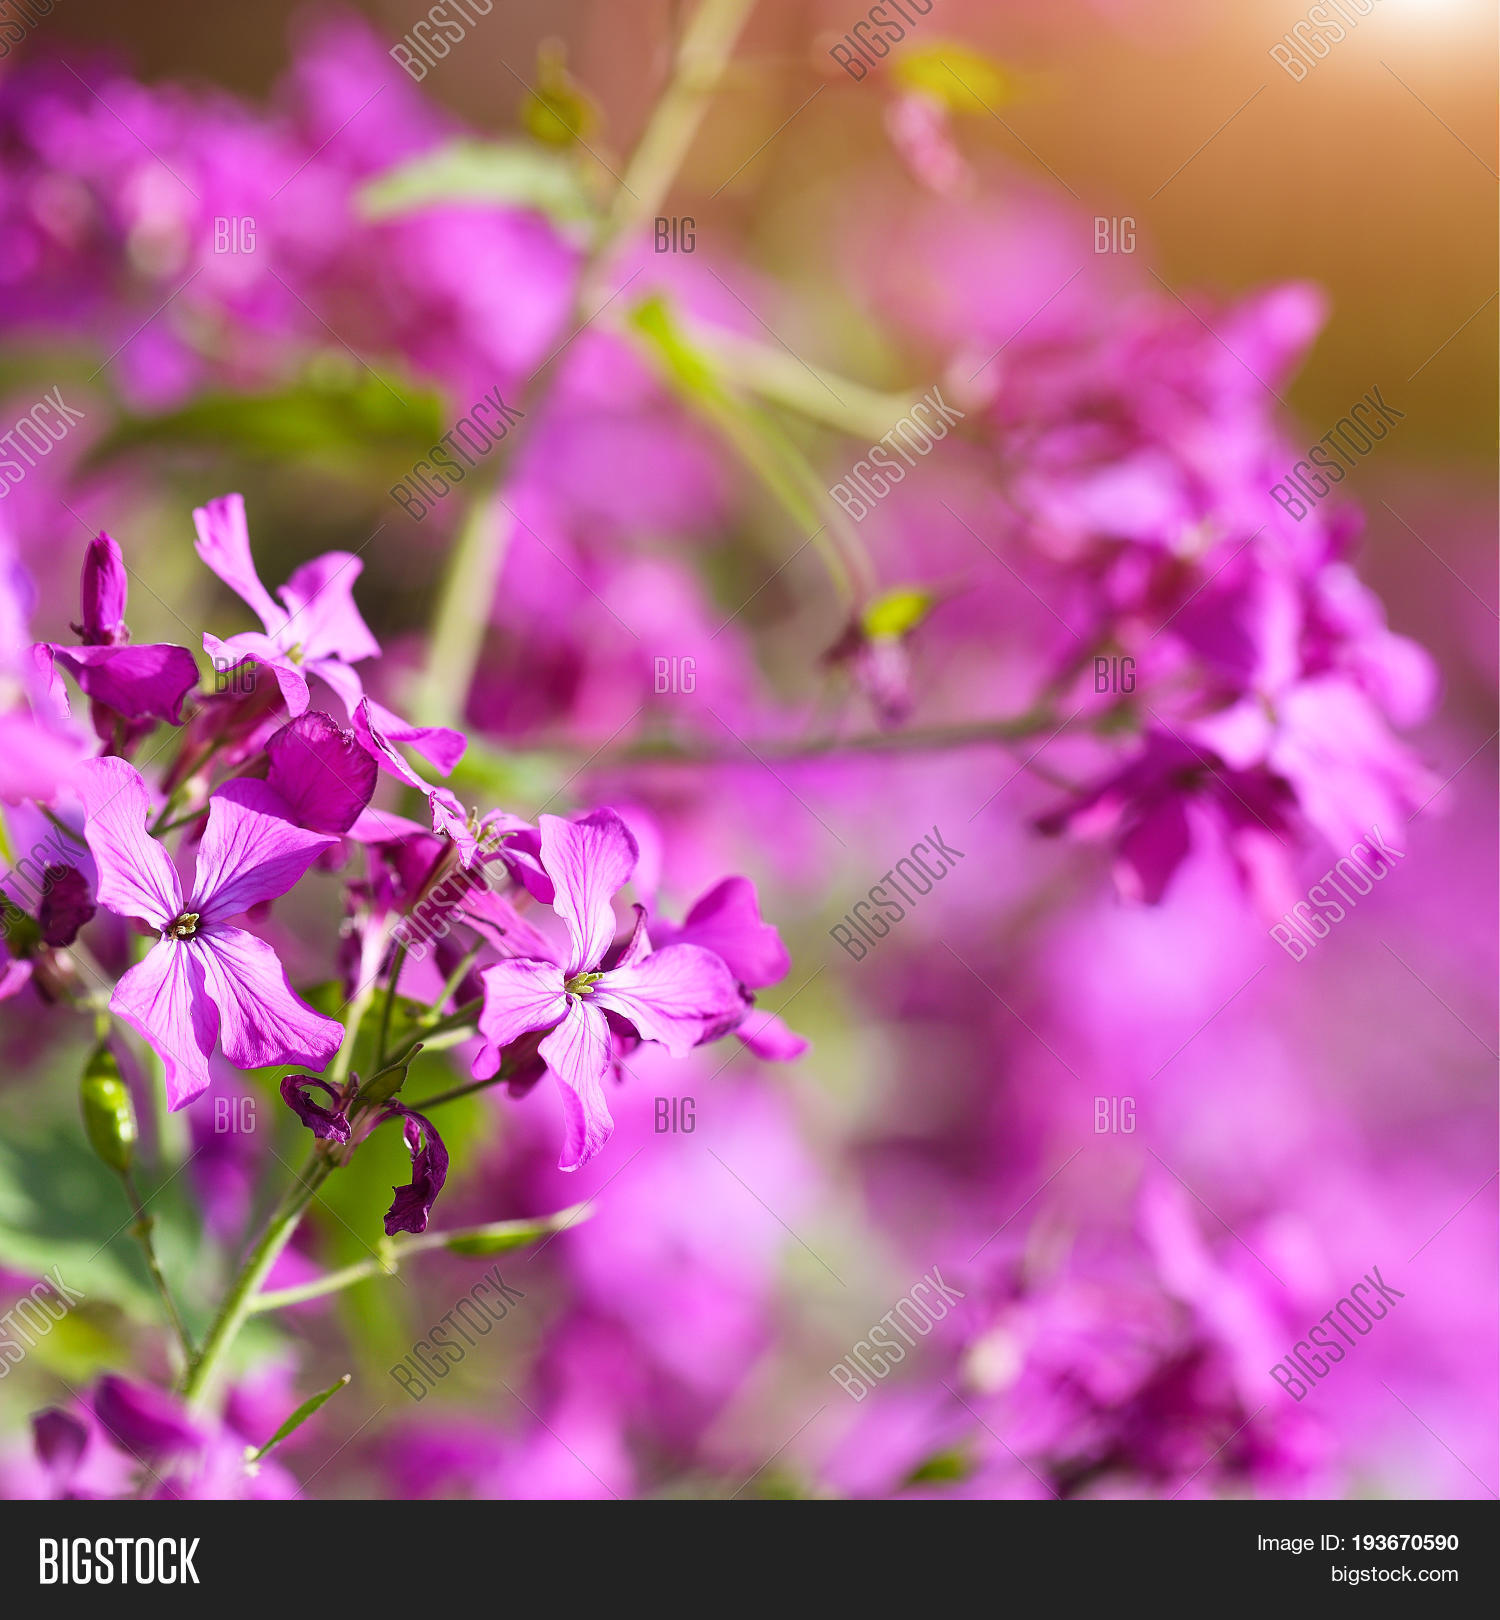 Delicate Pink Flowers Image Photo Free Trial Bigstock